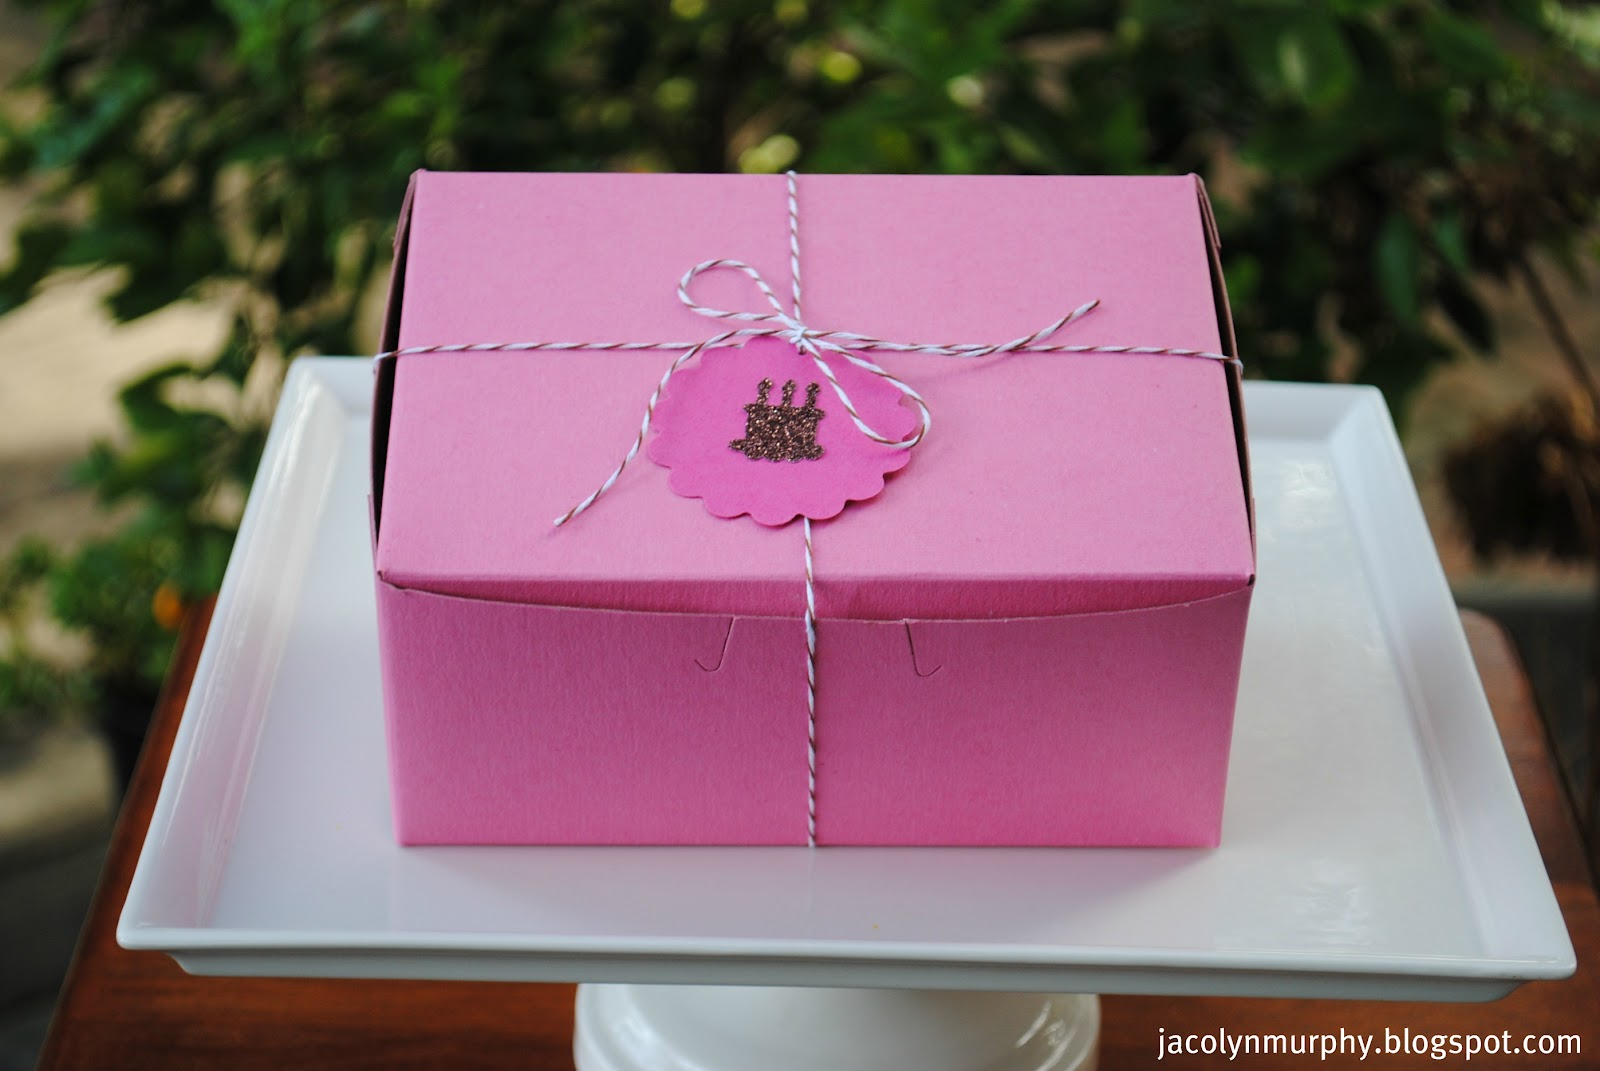 Cake boxes: Cake Boxes For Different Purposes